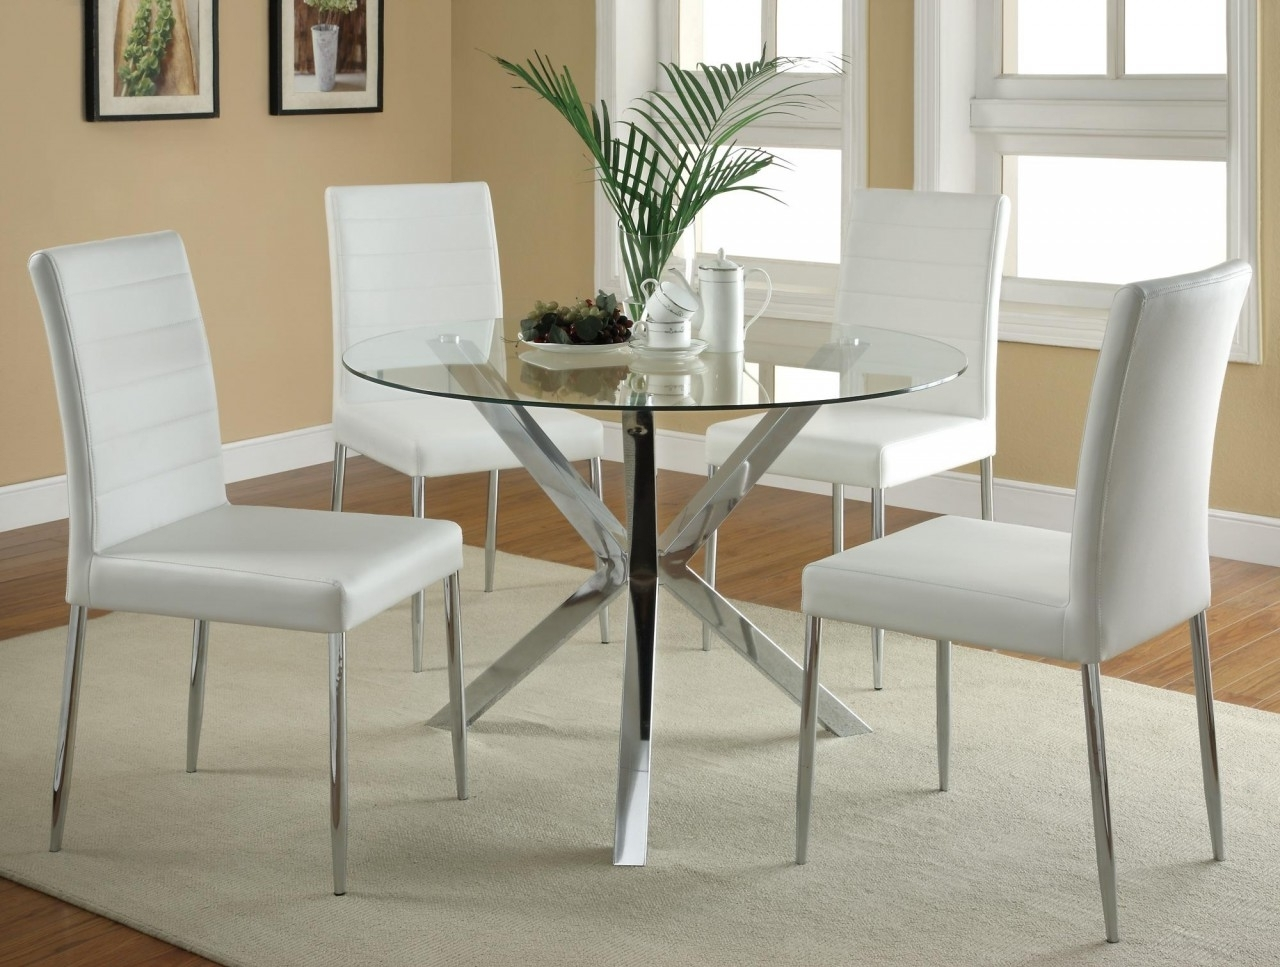 Preferred Modern Round Glass Dining Table With Chrome Polished Metal Leg As Inside Glass Dining Tables With Oak Legs (View 14 of 25)